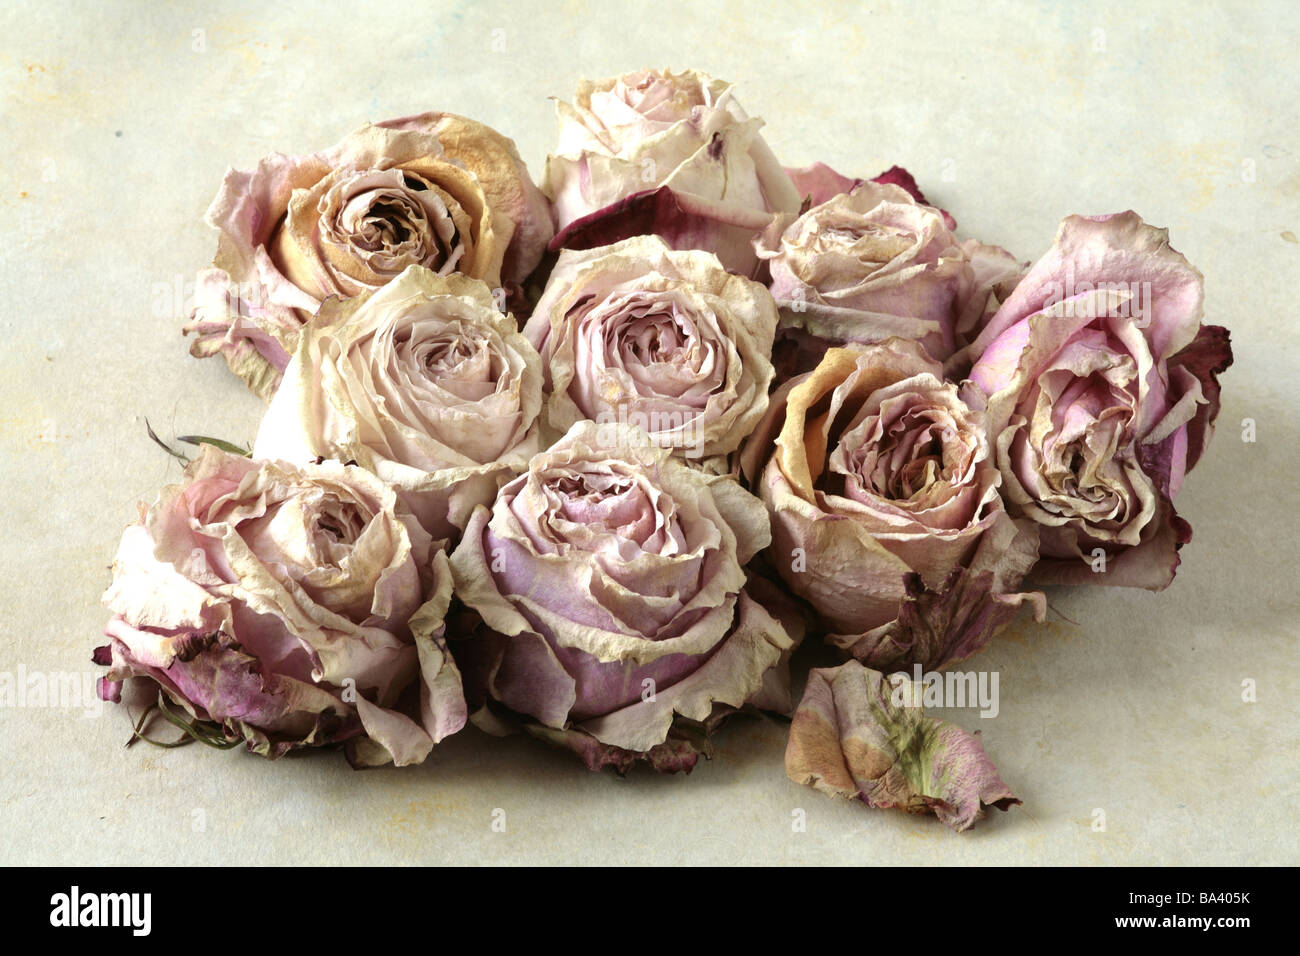 Rose Blooms Dried Flowers Roses Blooms Bloom Heads Petals Pink Stock